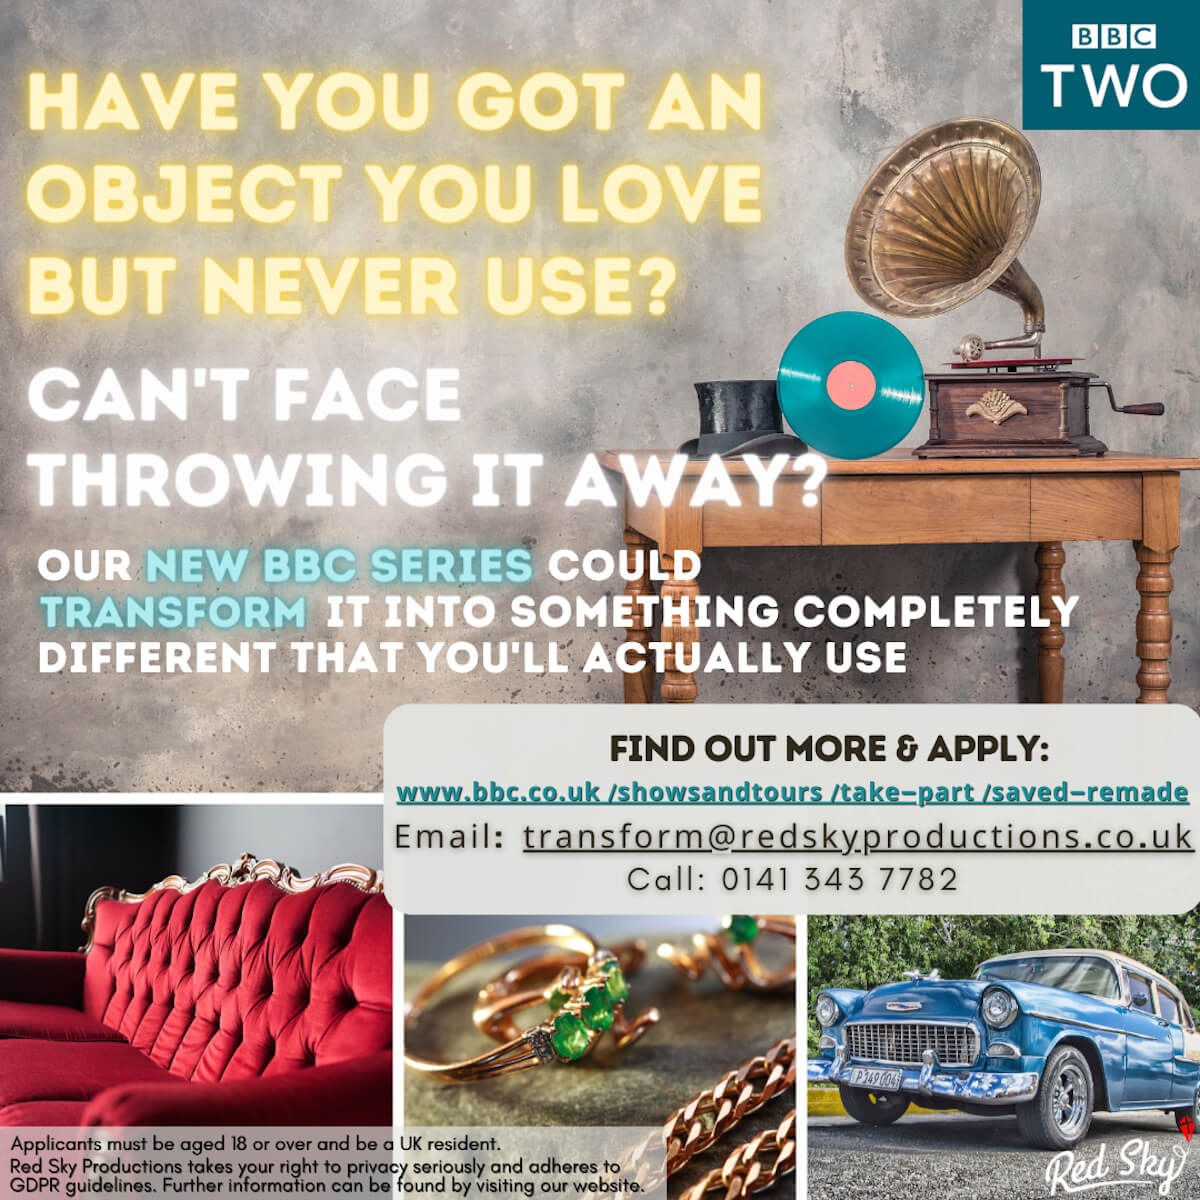 Saved and Remade Flyer: Have you got an object you love but never use? Can't face throwing it away. Our new BBC series could transform it into something completely different that you'll actually use.